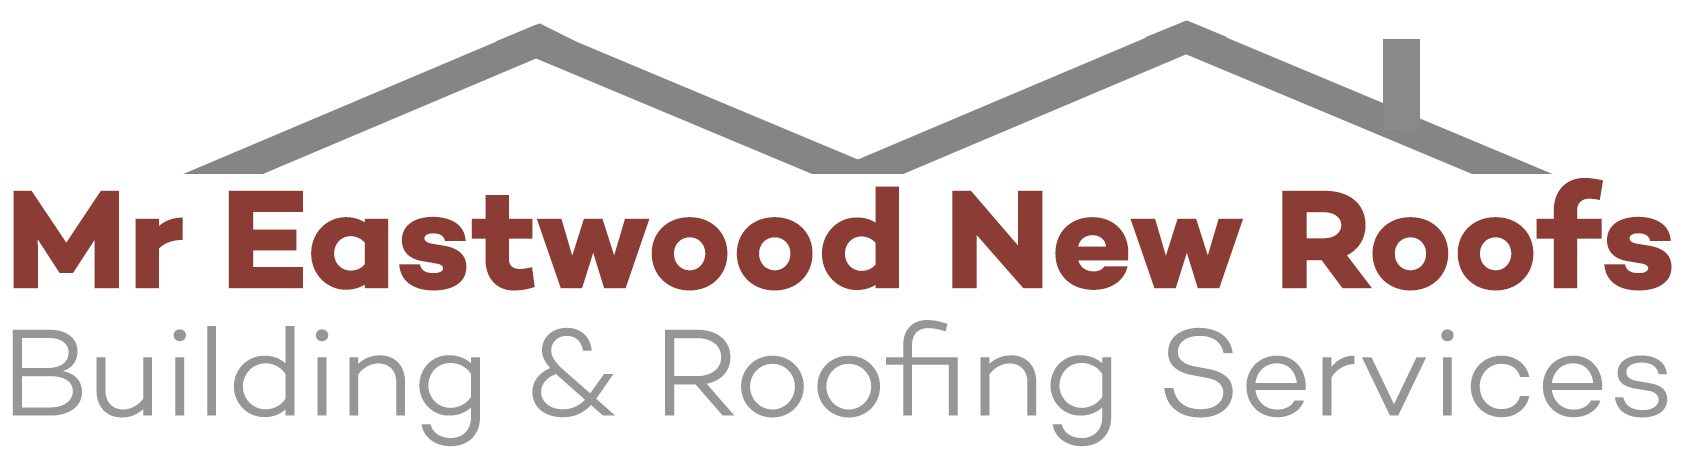 Mr Eastwood New Roofs Logo